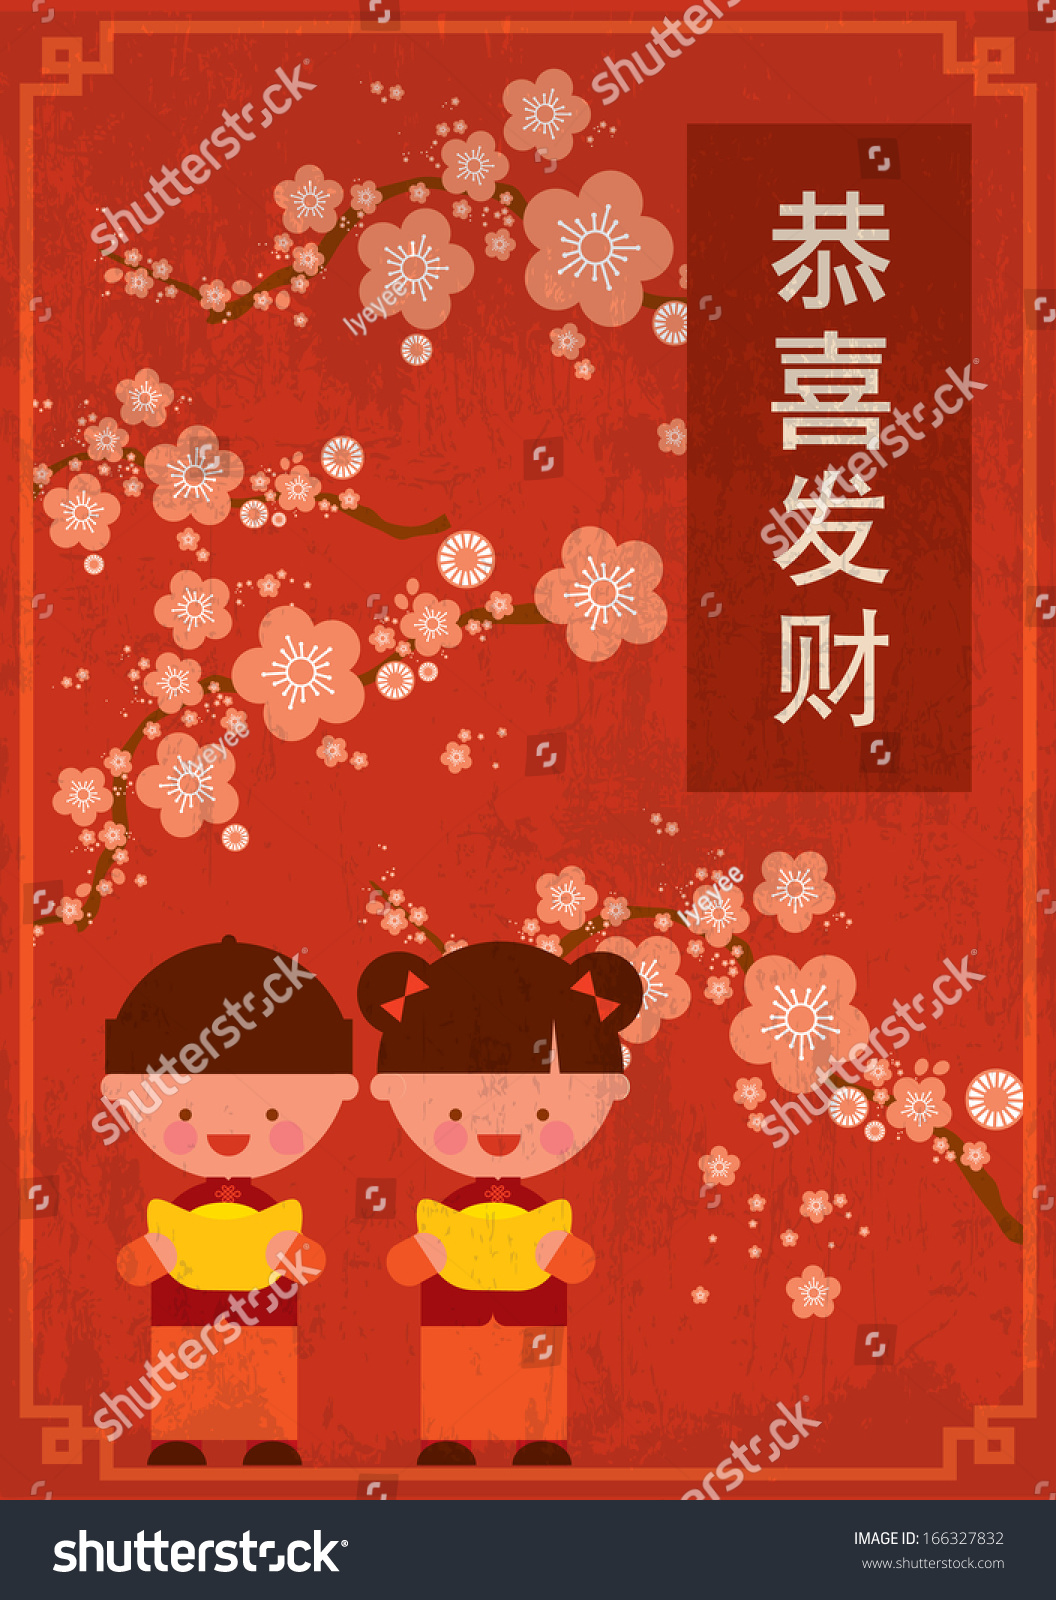 chinese lunar new year greeting template with boy and girl in traditional costume cherry blossom background